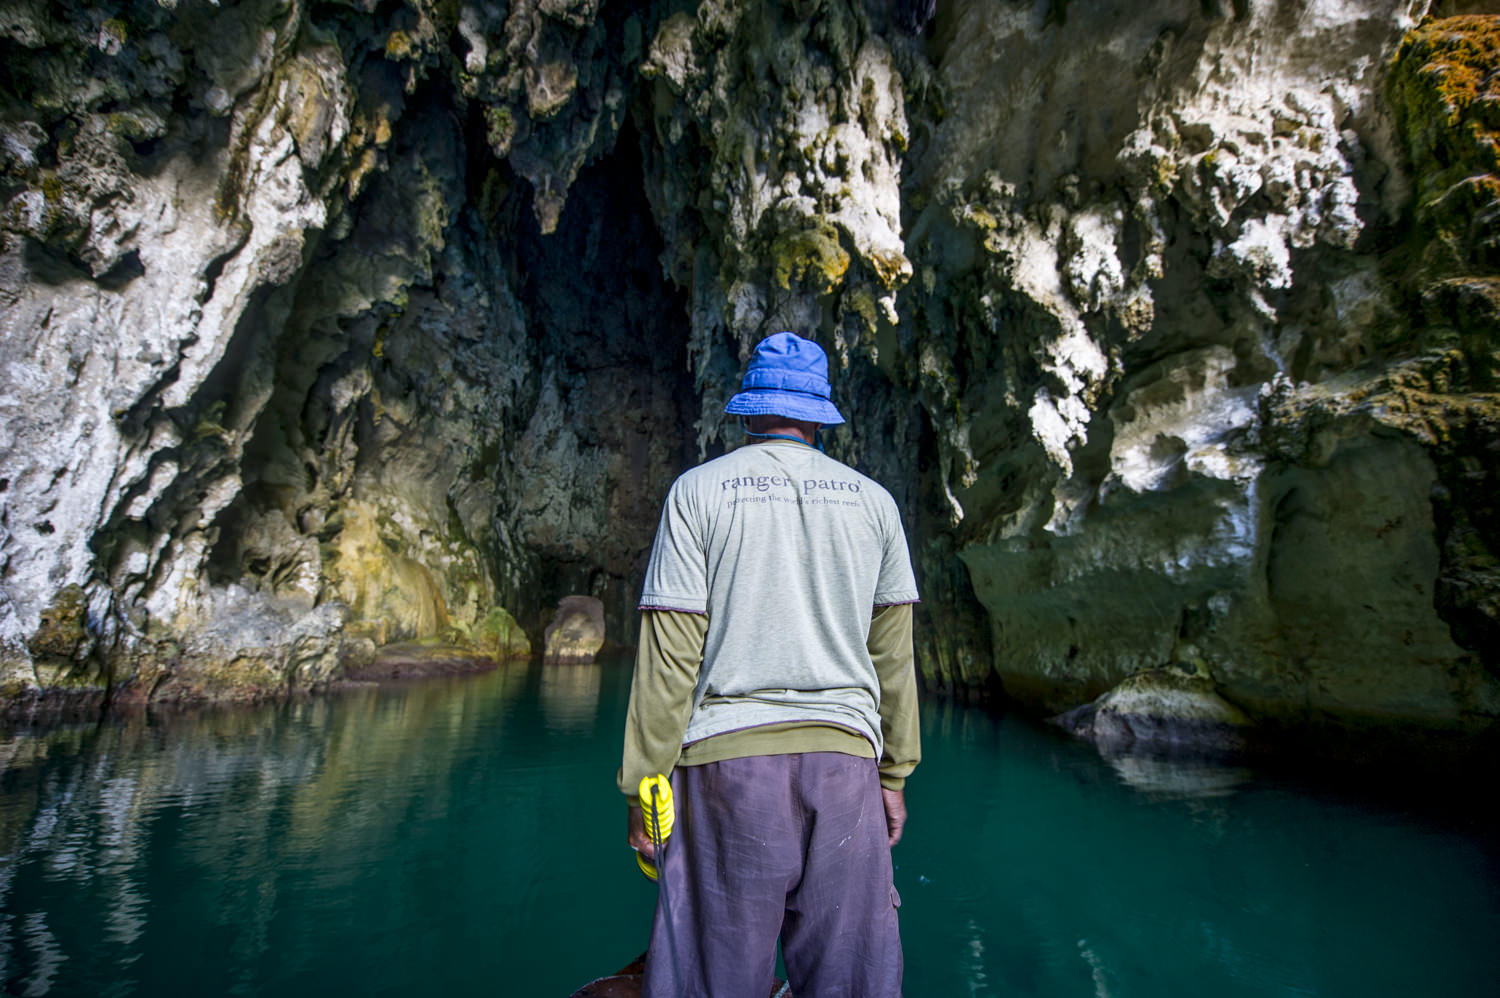 A fisherman turned ranger, who now works with Misool Eco Resort to protect the local MPA